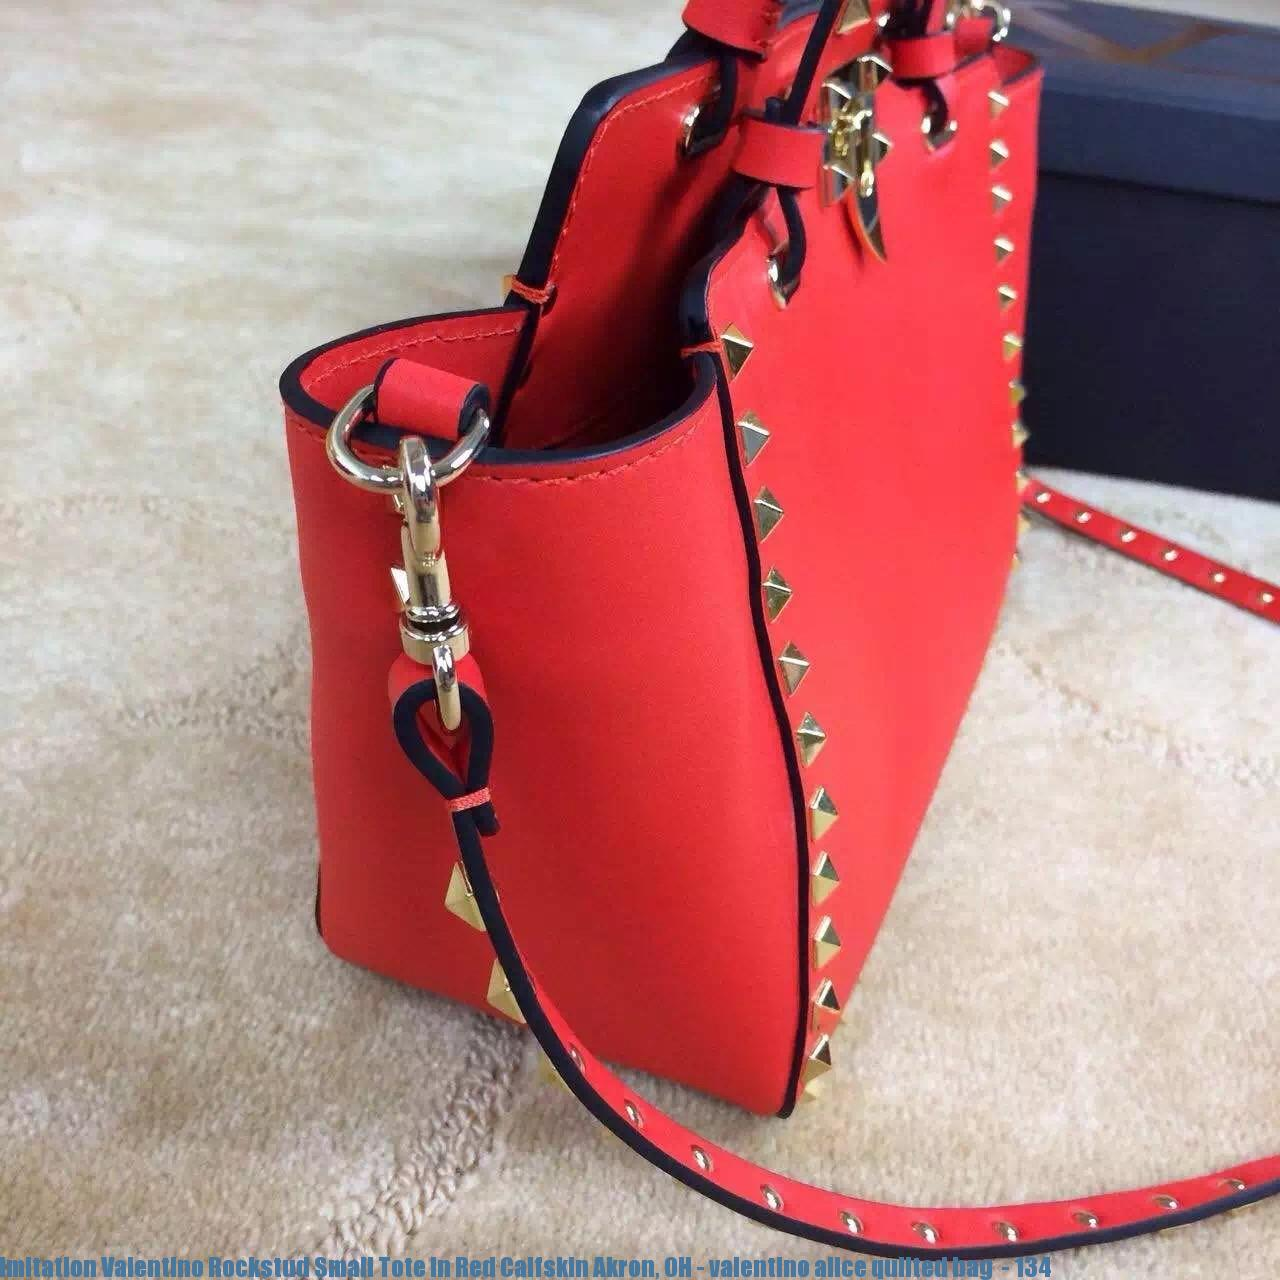 ba83ff1b495 Imitation Valentino Rockstud Small Tote In Red Calfskin Akron, OH ...